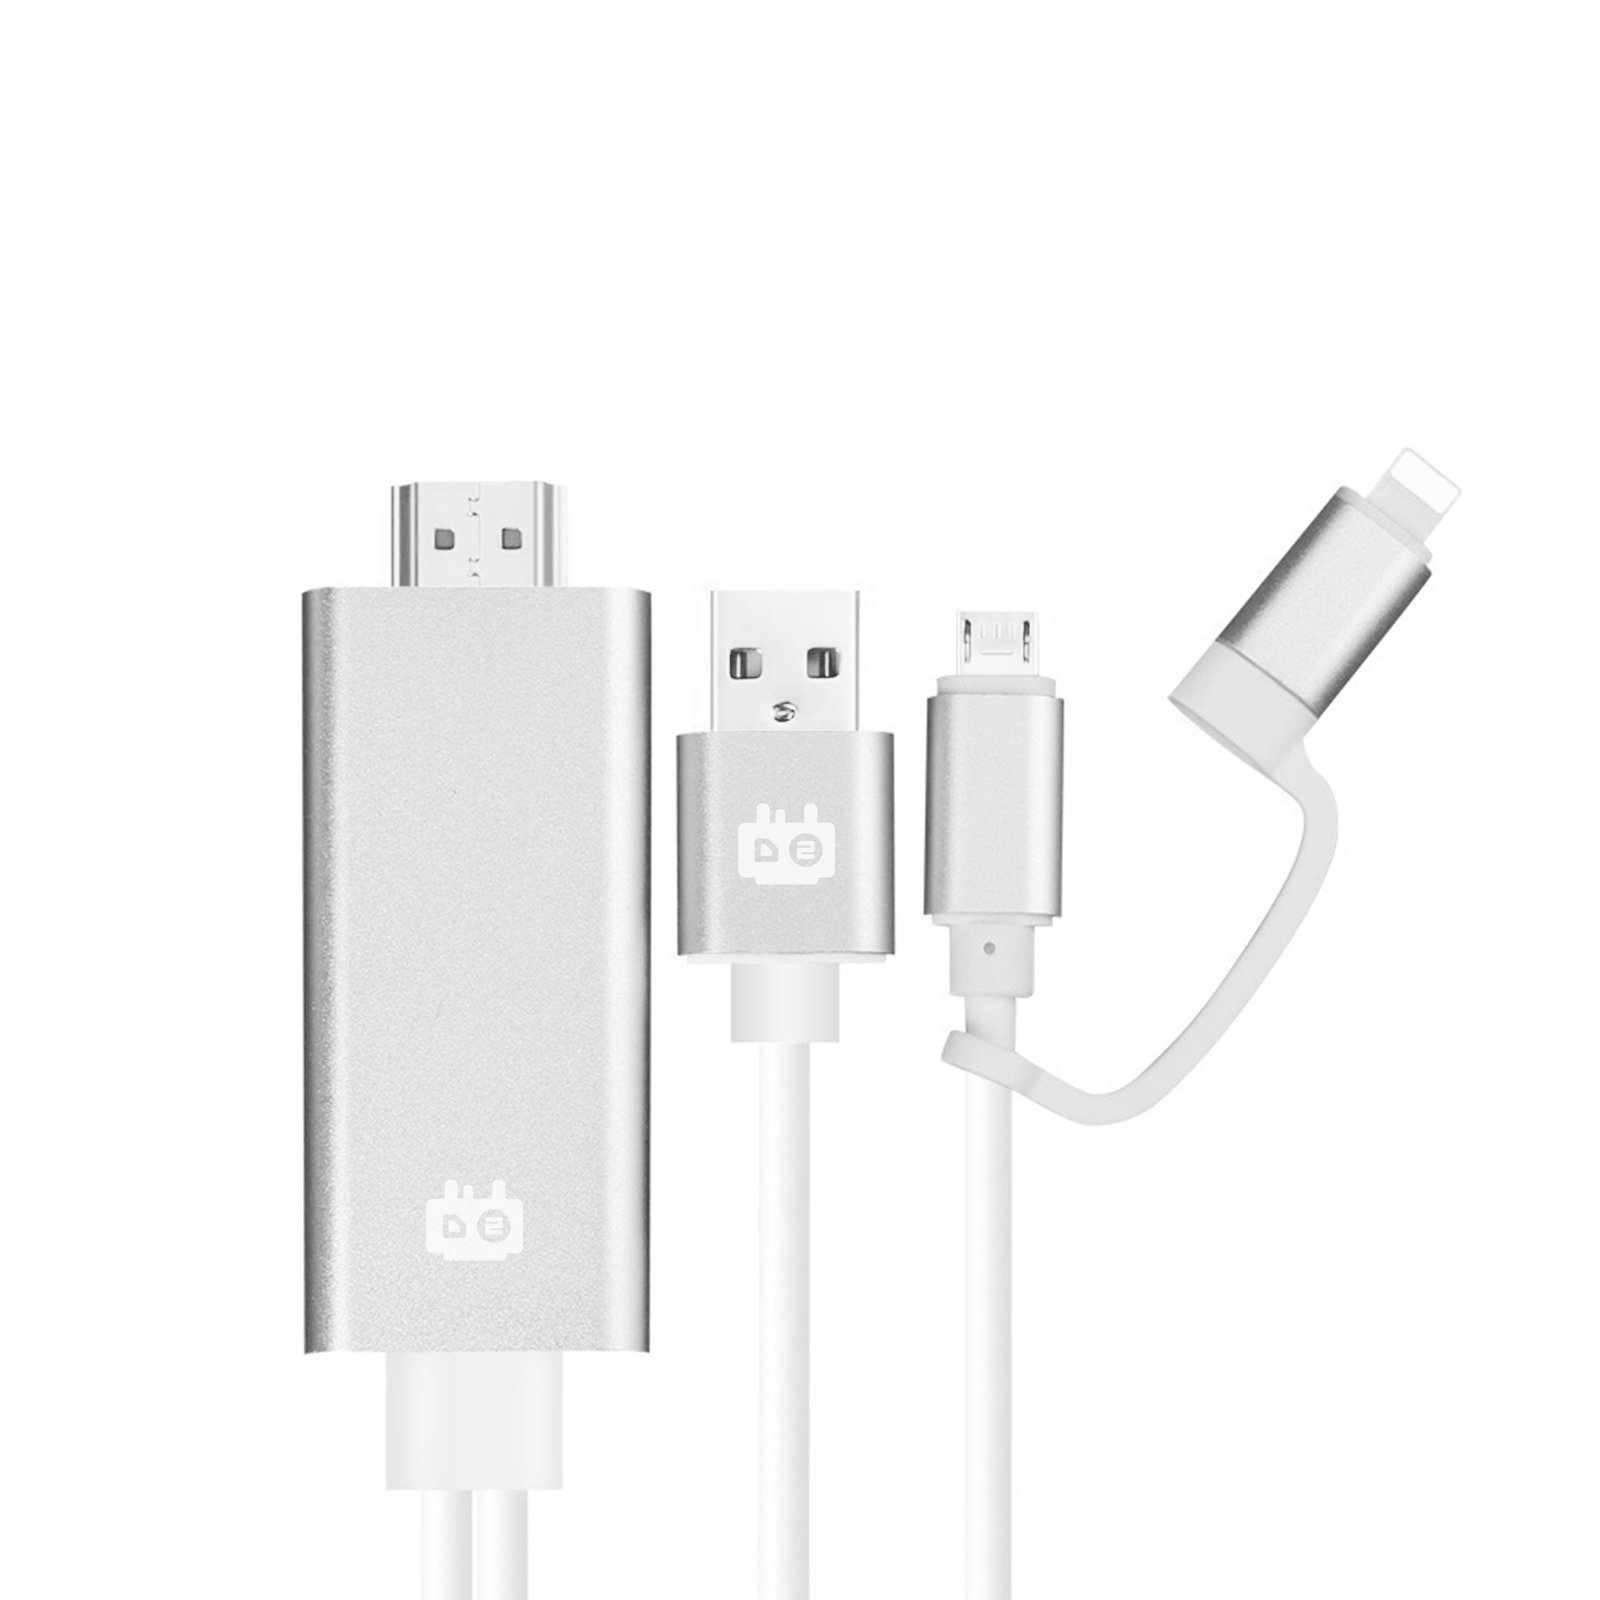 HDMI Cable Lighting/Micro USB 1080P 6 ft 2in1 to TV, HDCP Connector Adapter w/USB powered, Mirroring Cellphone Screen to TV/Projector/Monitor for IOS and Android Micro smart devices by D2tech